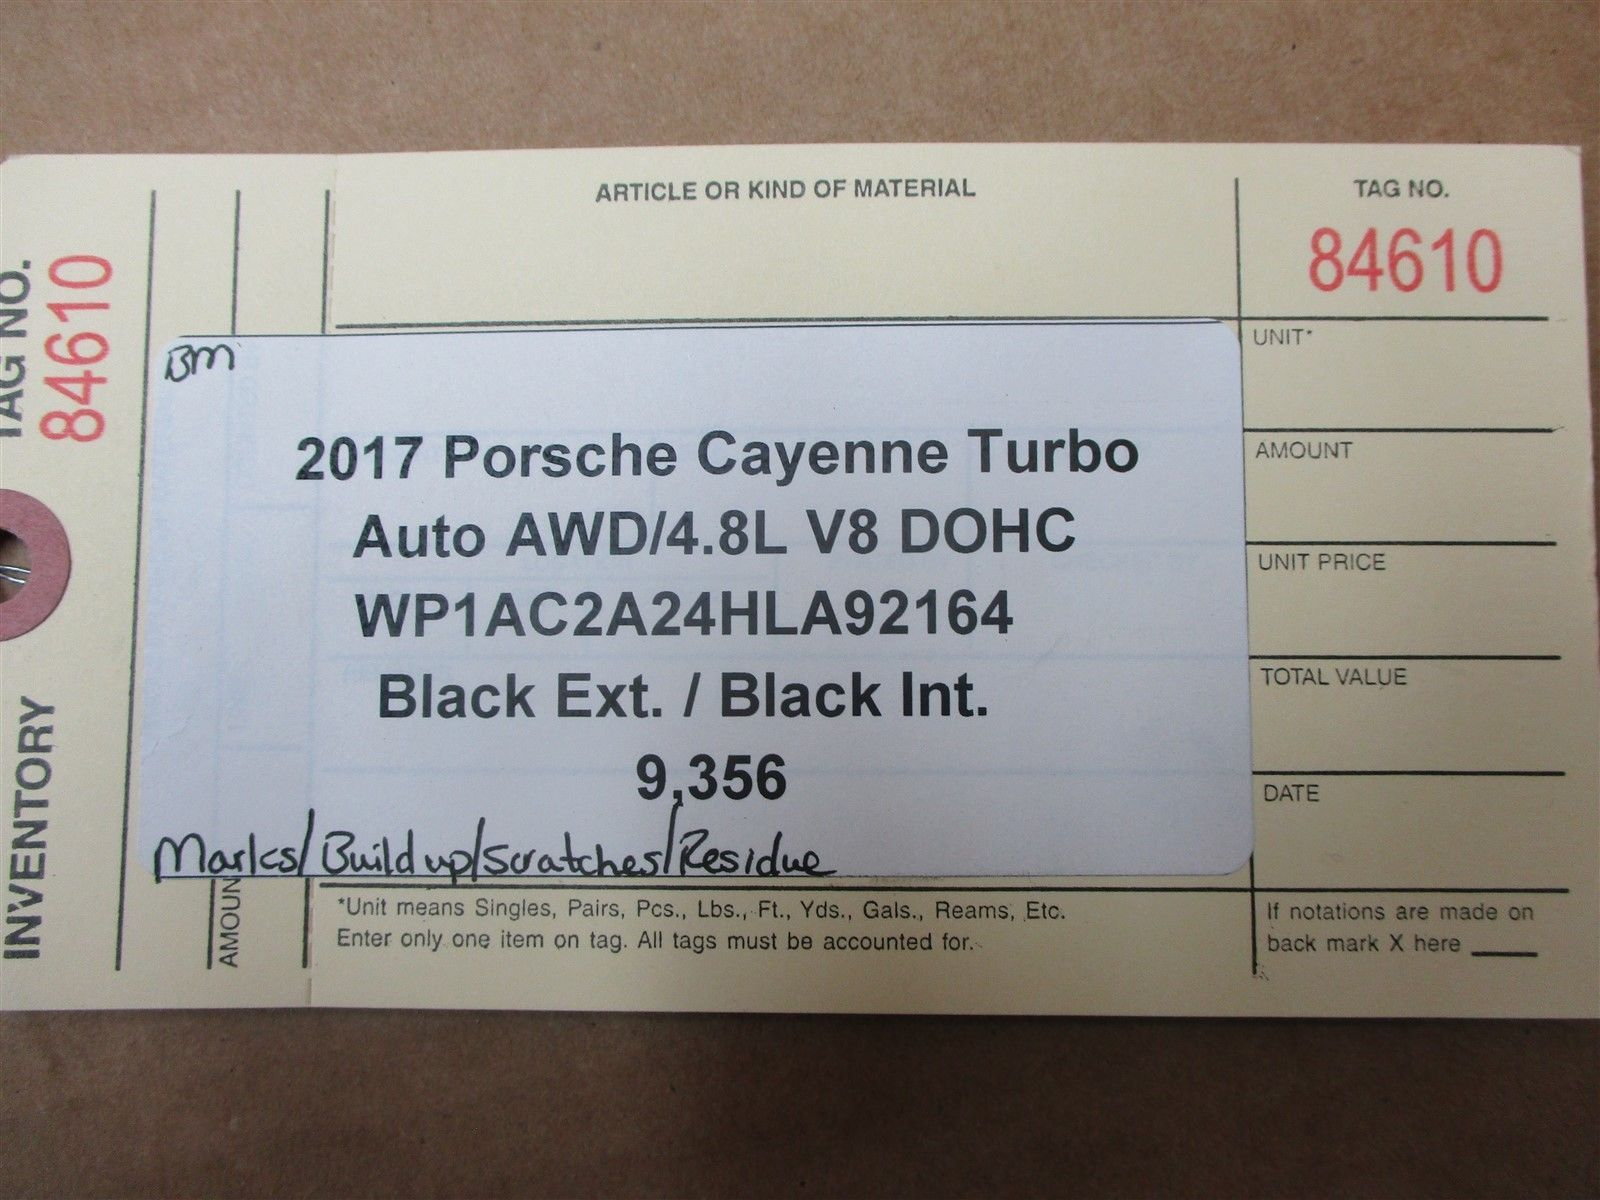 17 Cayenne Turbo AWD Porsche 958 EXTERIOR ROOF RAIL TRIM GUIDES 9,356